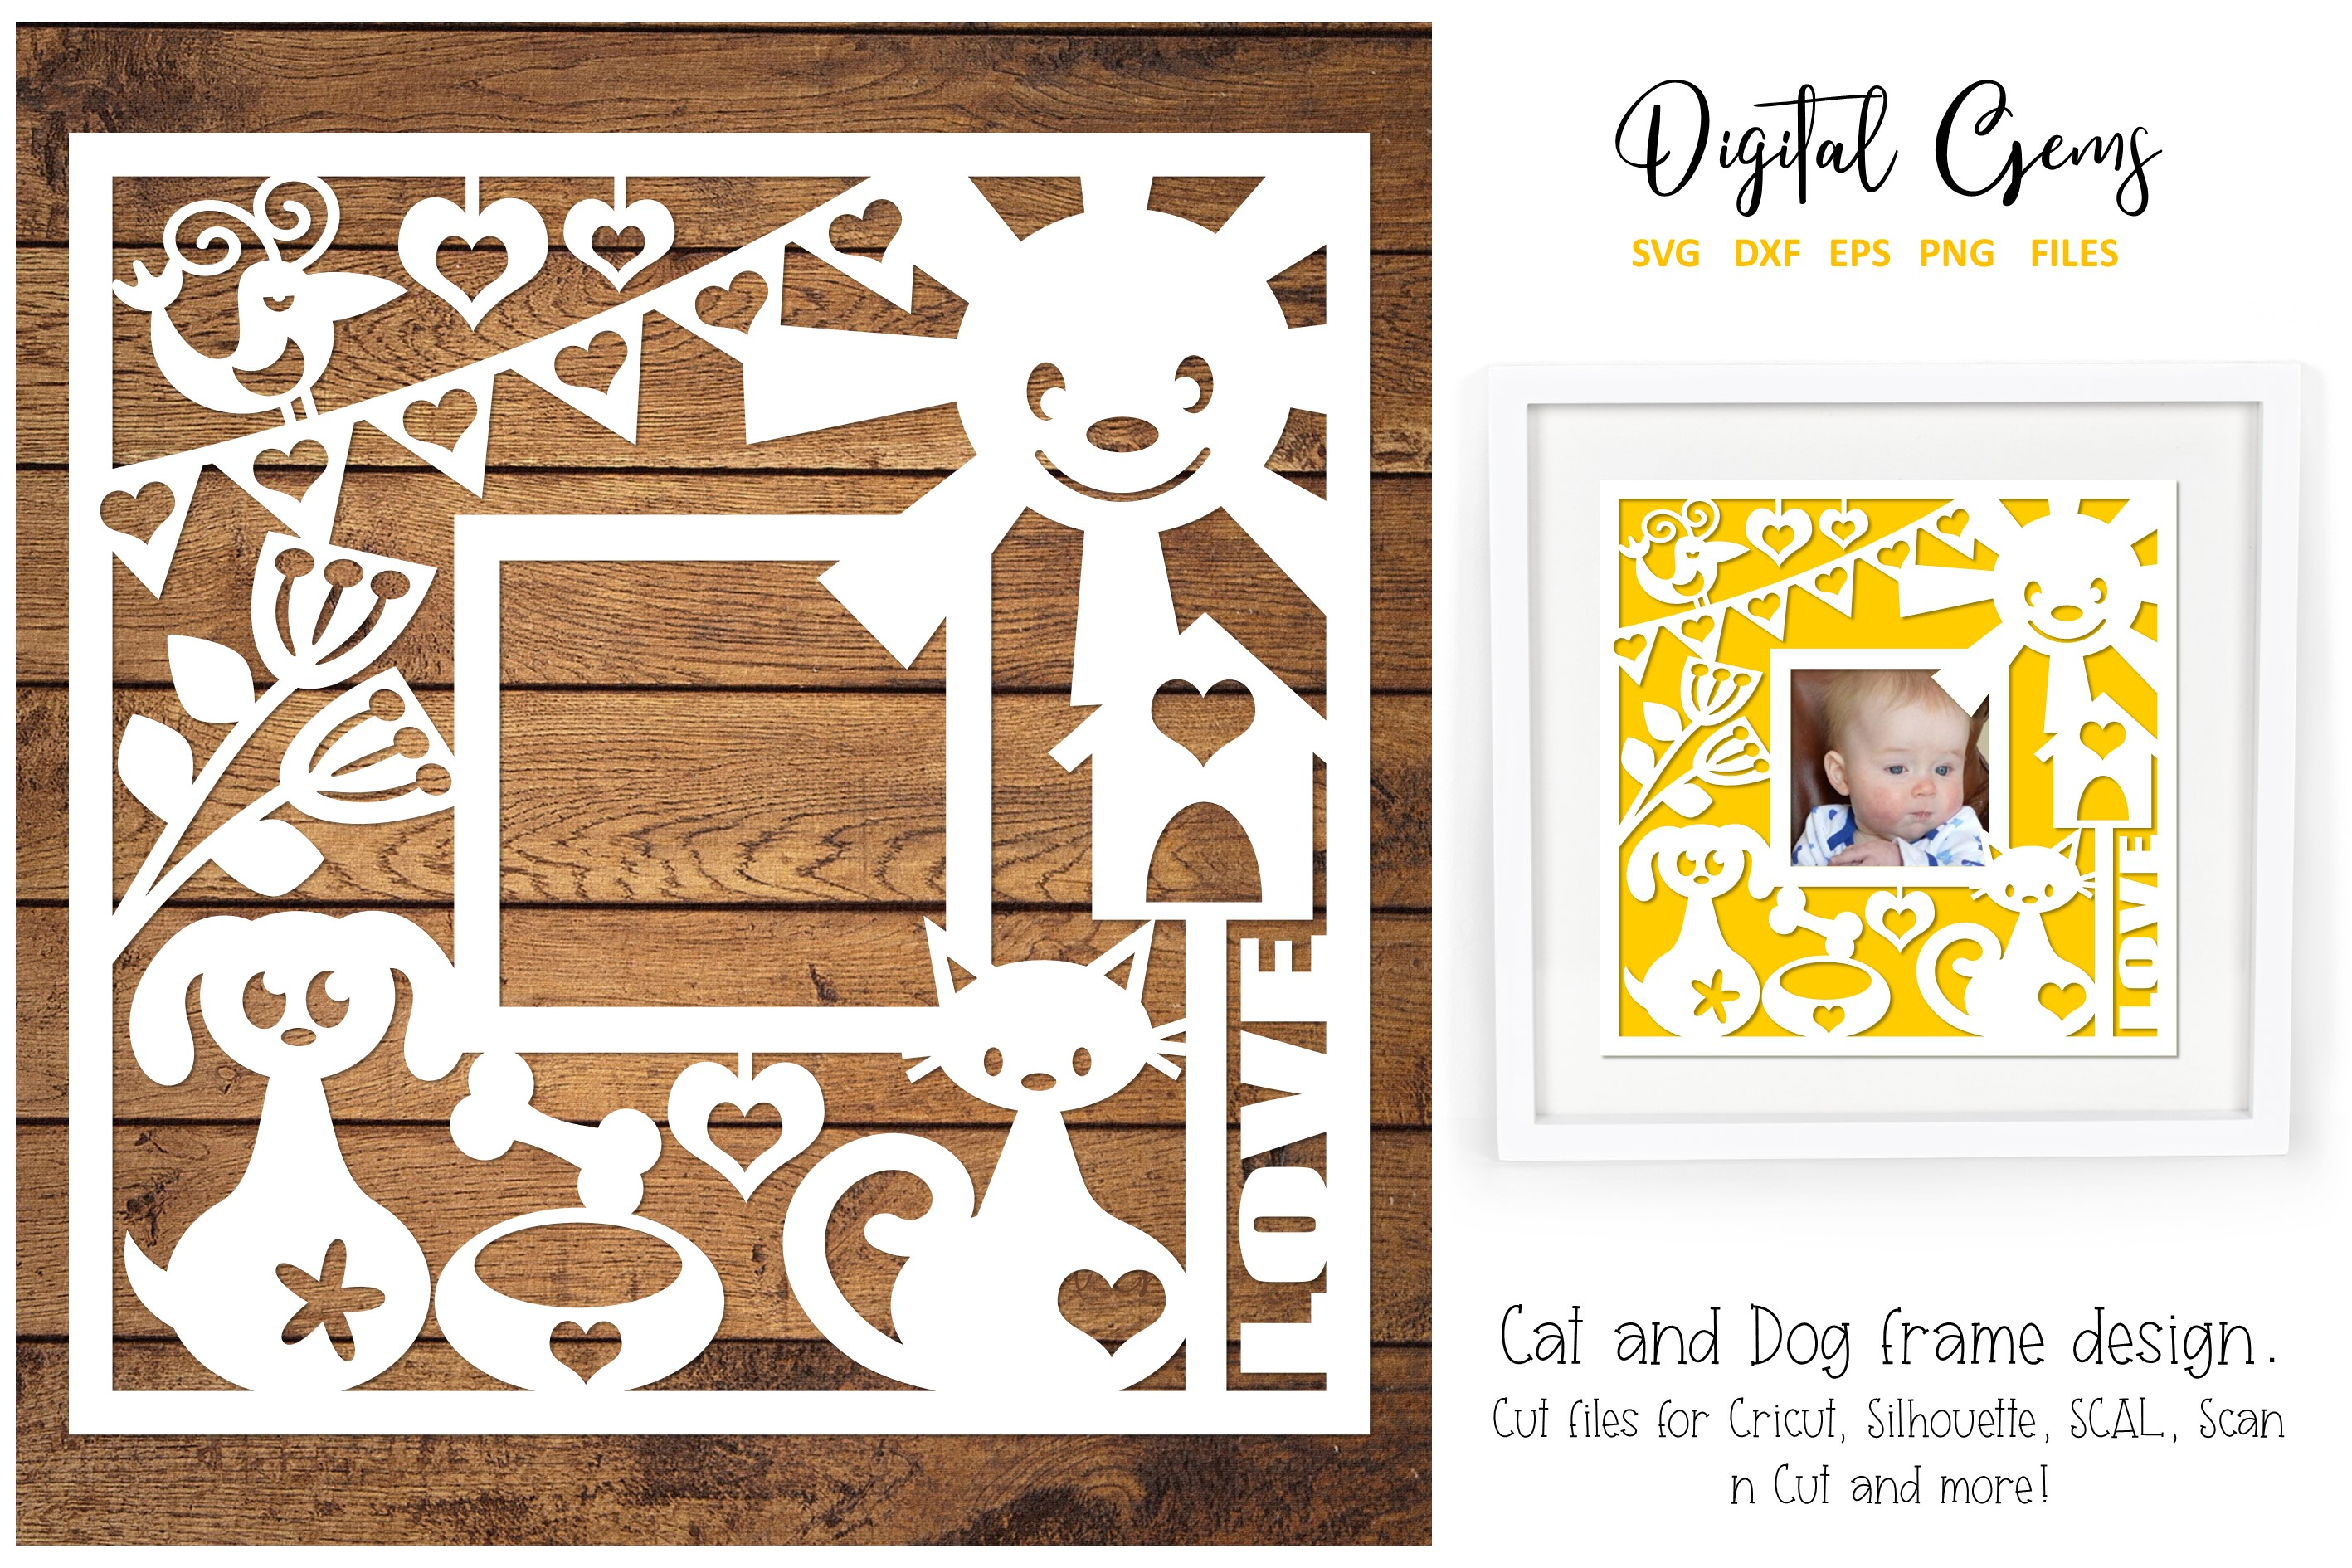 Download Free Cat And Dog Paper Cut Design Graphic By Digital Gems Creative for Cricut Explore, Silhouette and other cutting machines.